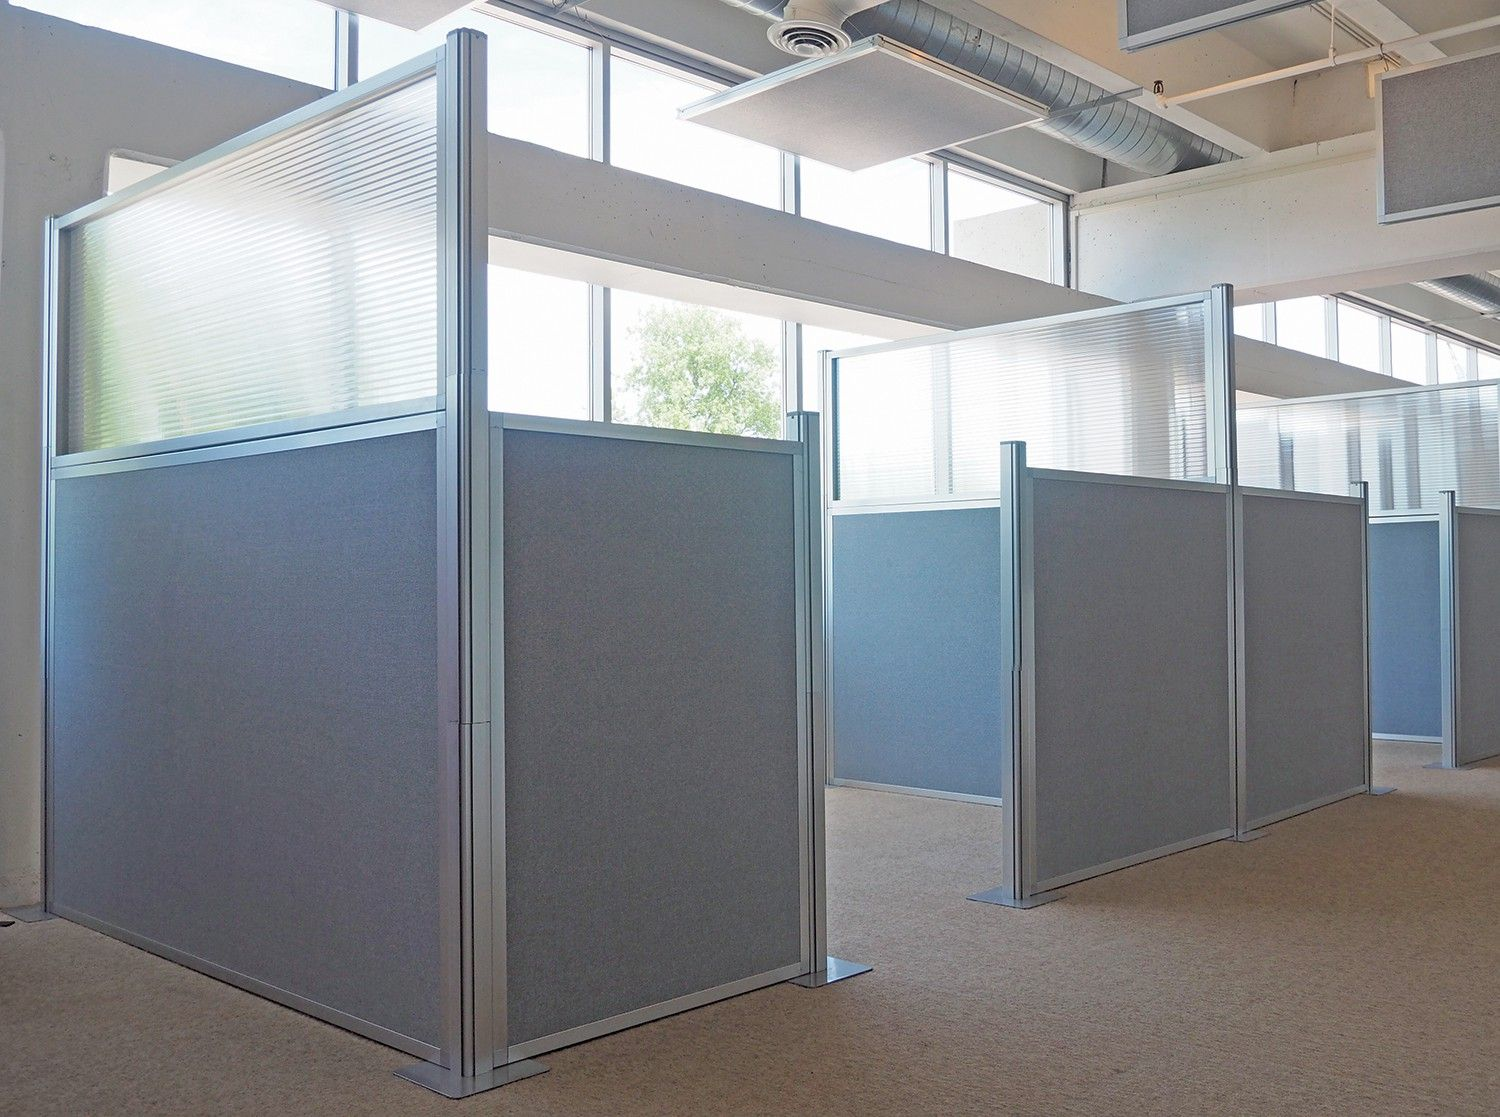 The Hush Panels (DIY cubicle partitions) are a wise choice to grow ...